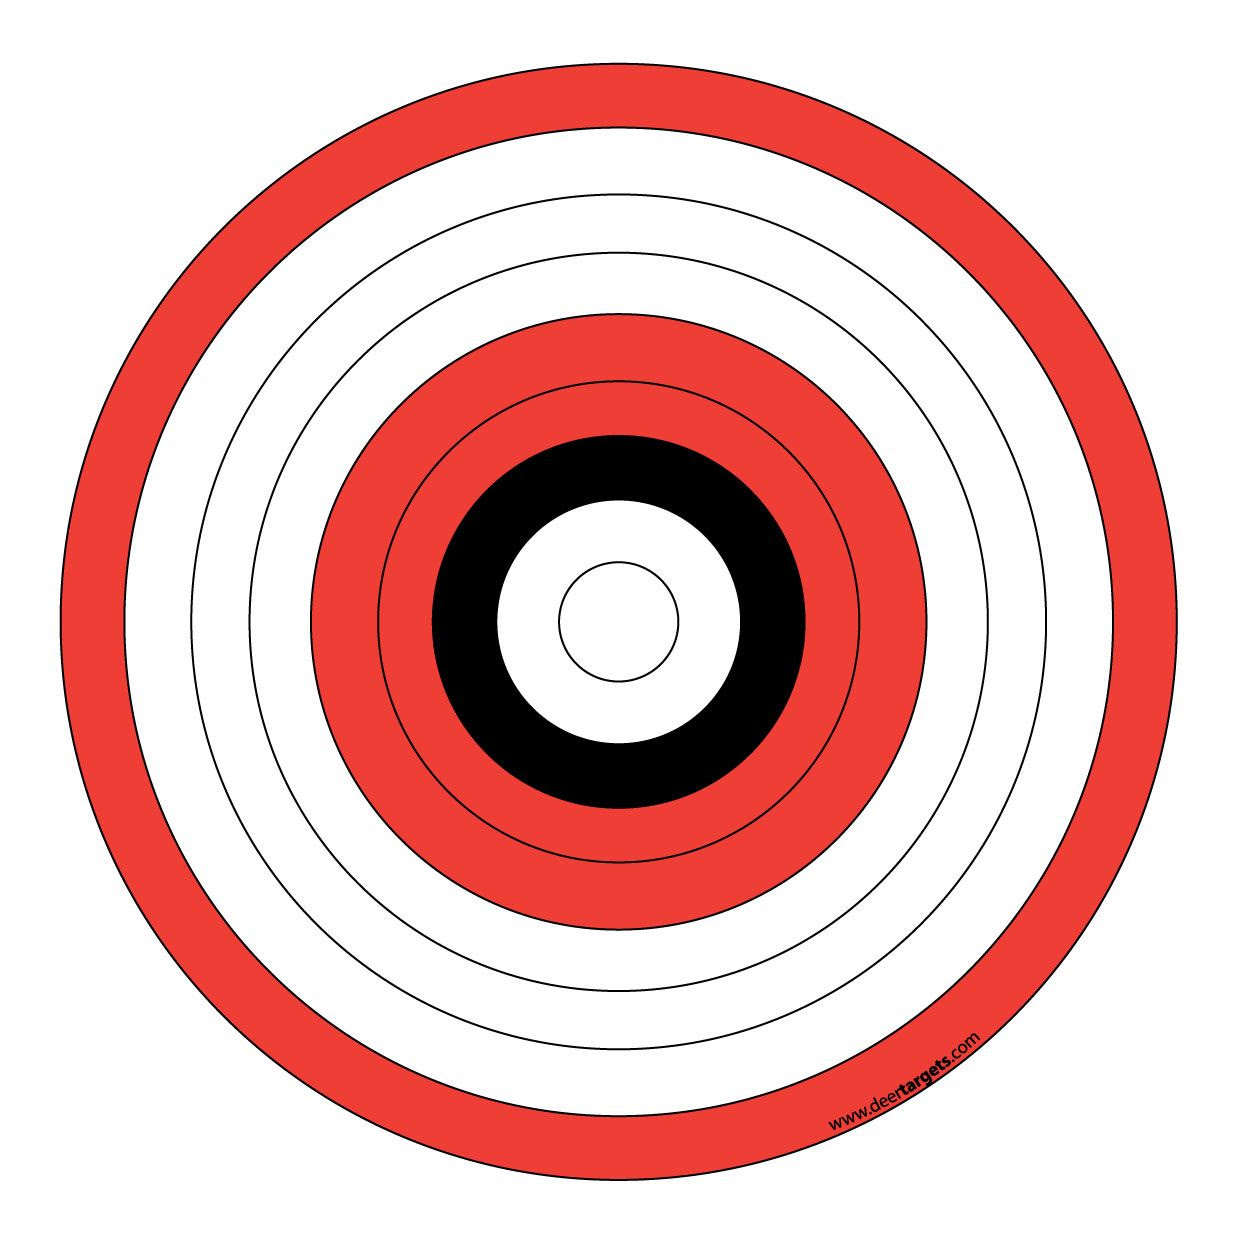 1000+ images about Targets on Pinterest | Air rifle, Archery and ...